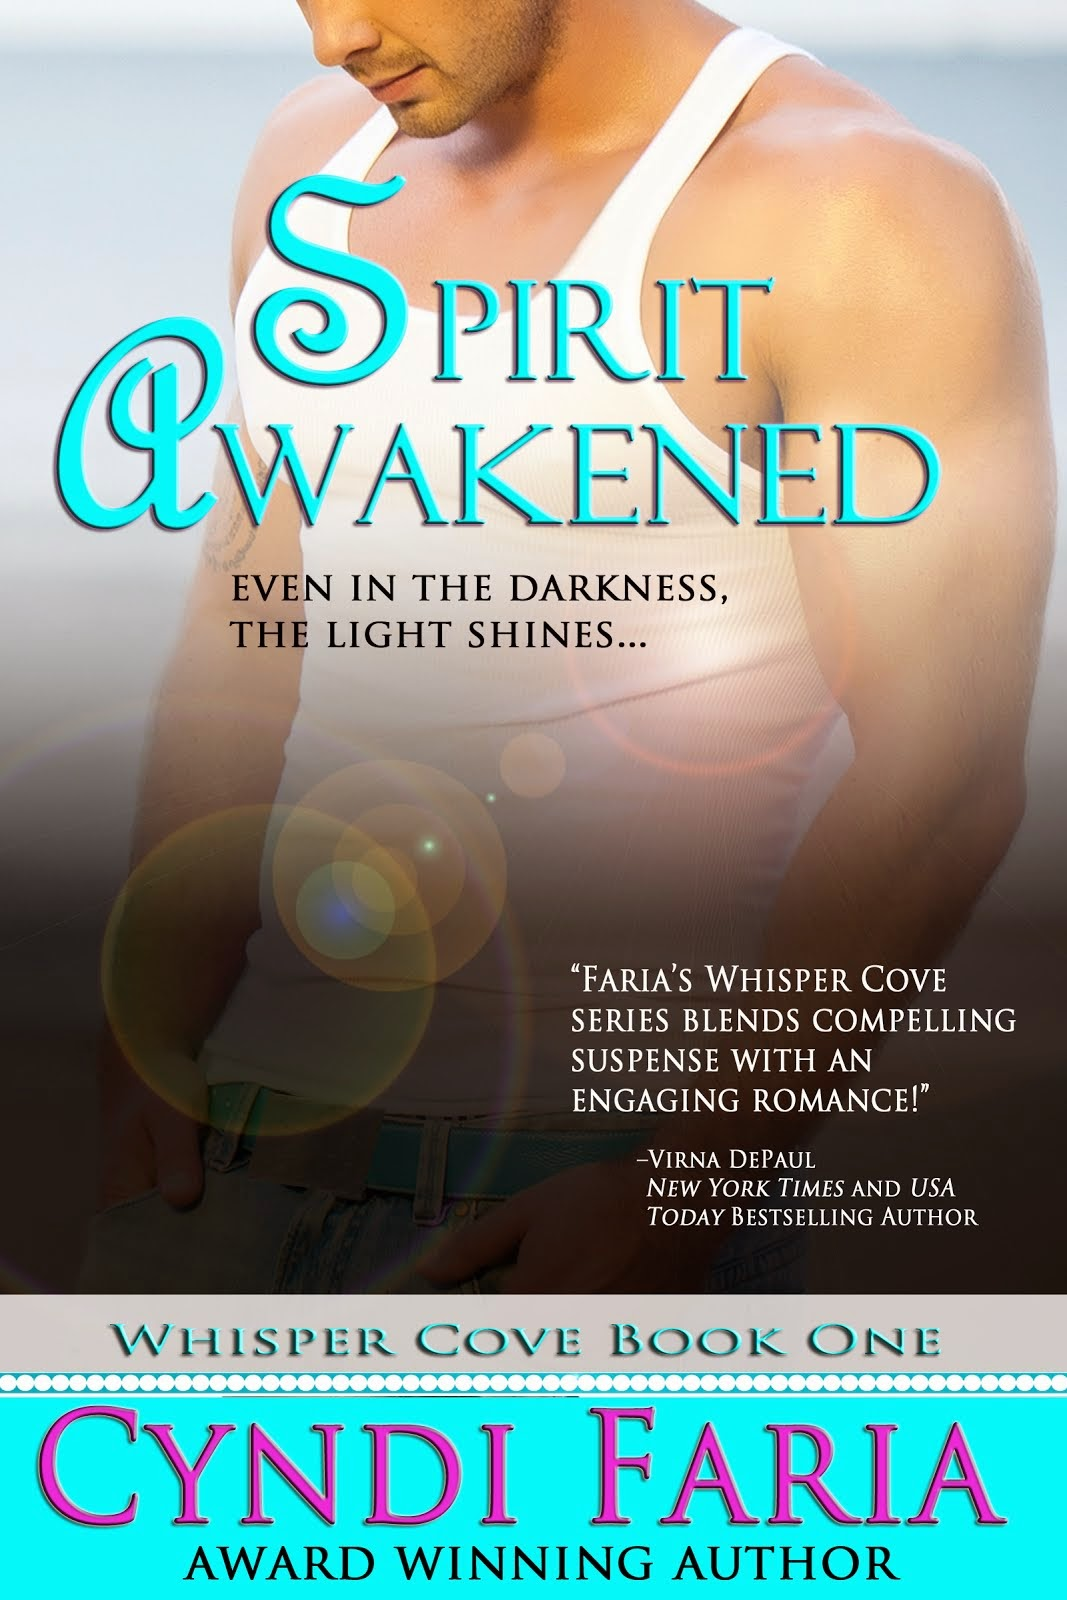 SPIRIT AWAKENED by Cyndi Faria